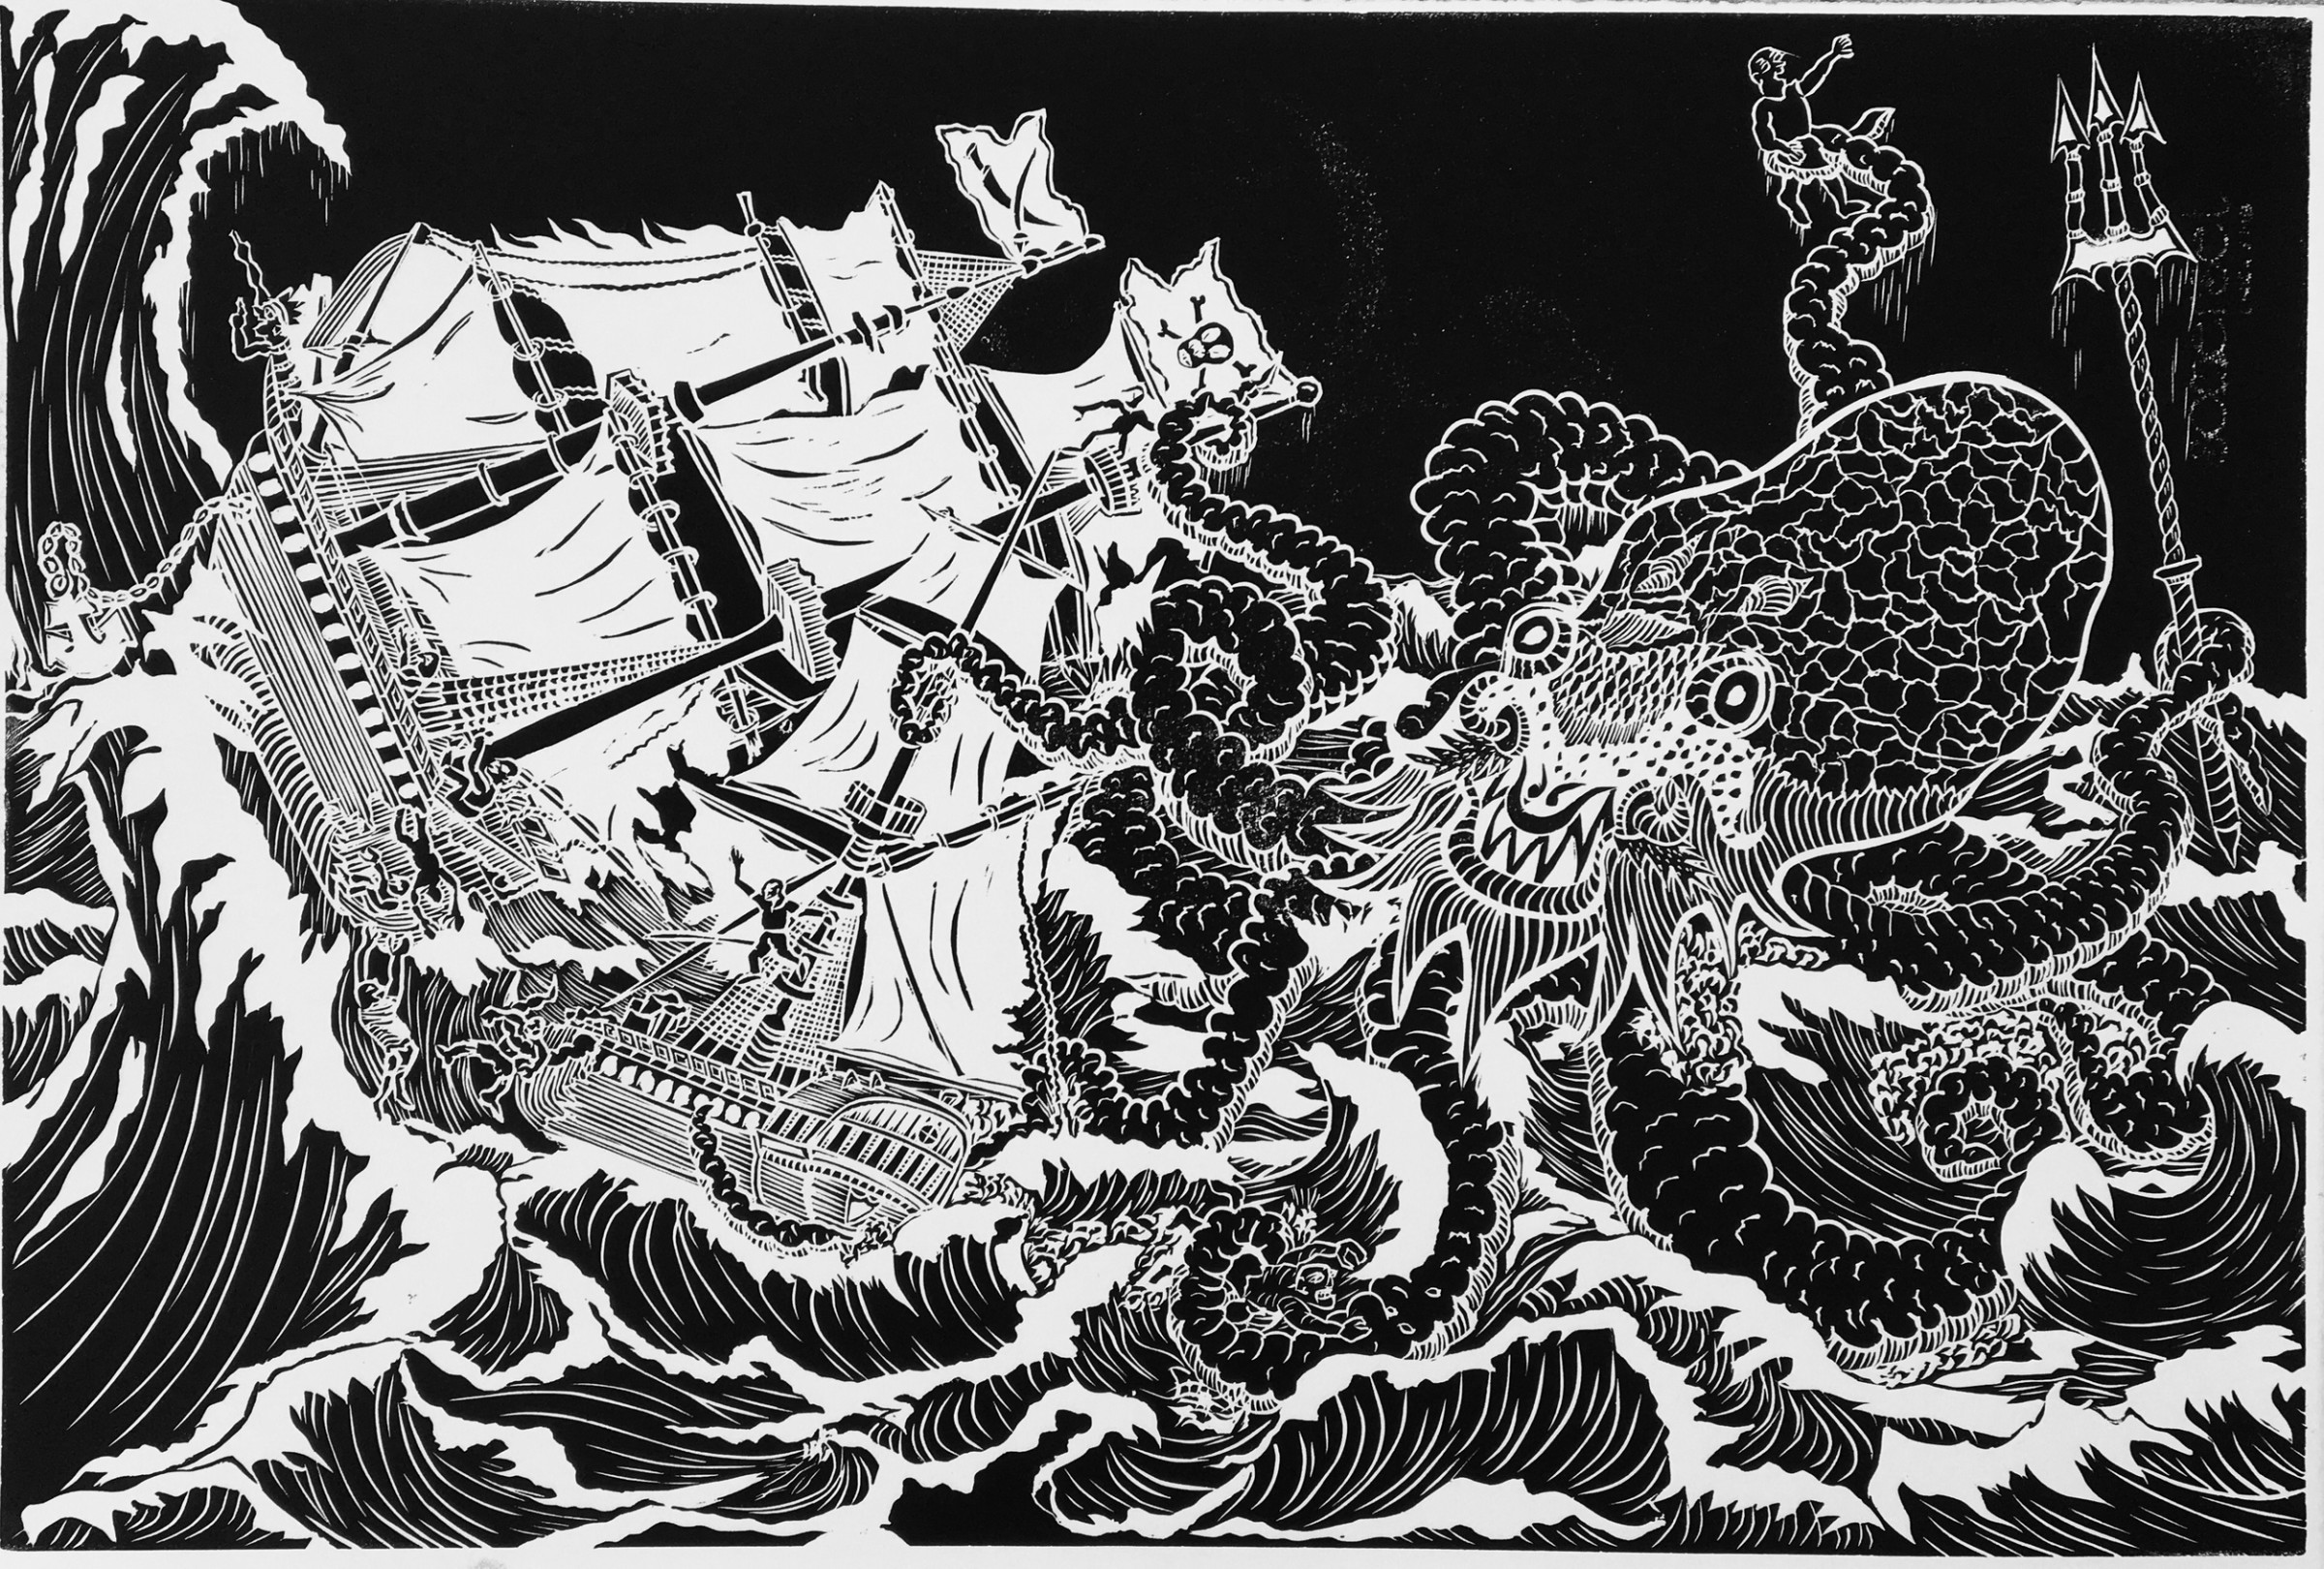 "<span class=""link fancybox-details-link""><a href=""/exhibitions/17/works/image_standalone683/"">View Detail Page</a></span><p><strong>Fernando Feijoo</strong></p><p>Kraken</p><p>linocut, ed of 30</p><p>60 x 40cm</p><p>£295 framed</p><p>£250 unframed</p>"